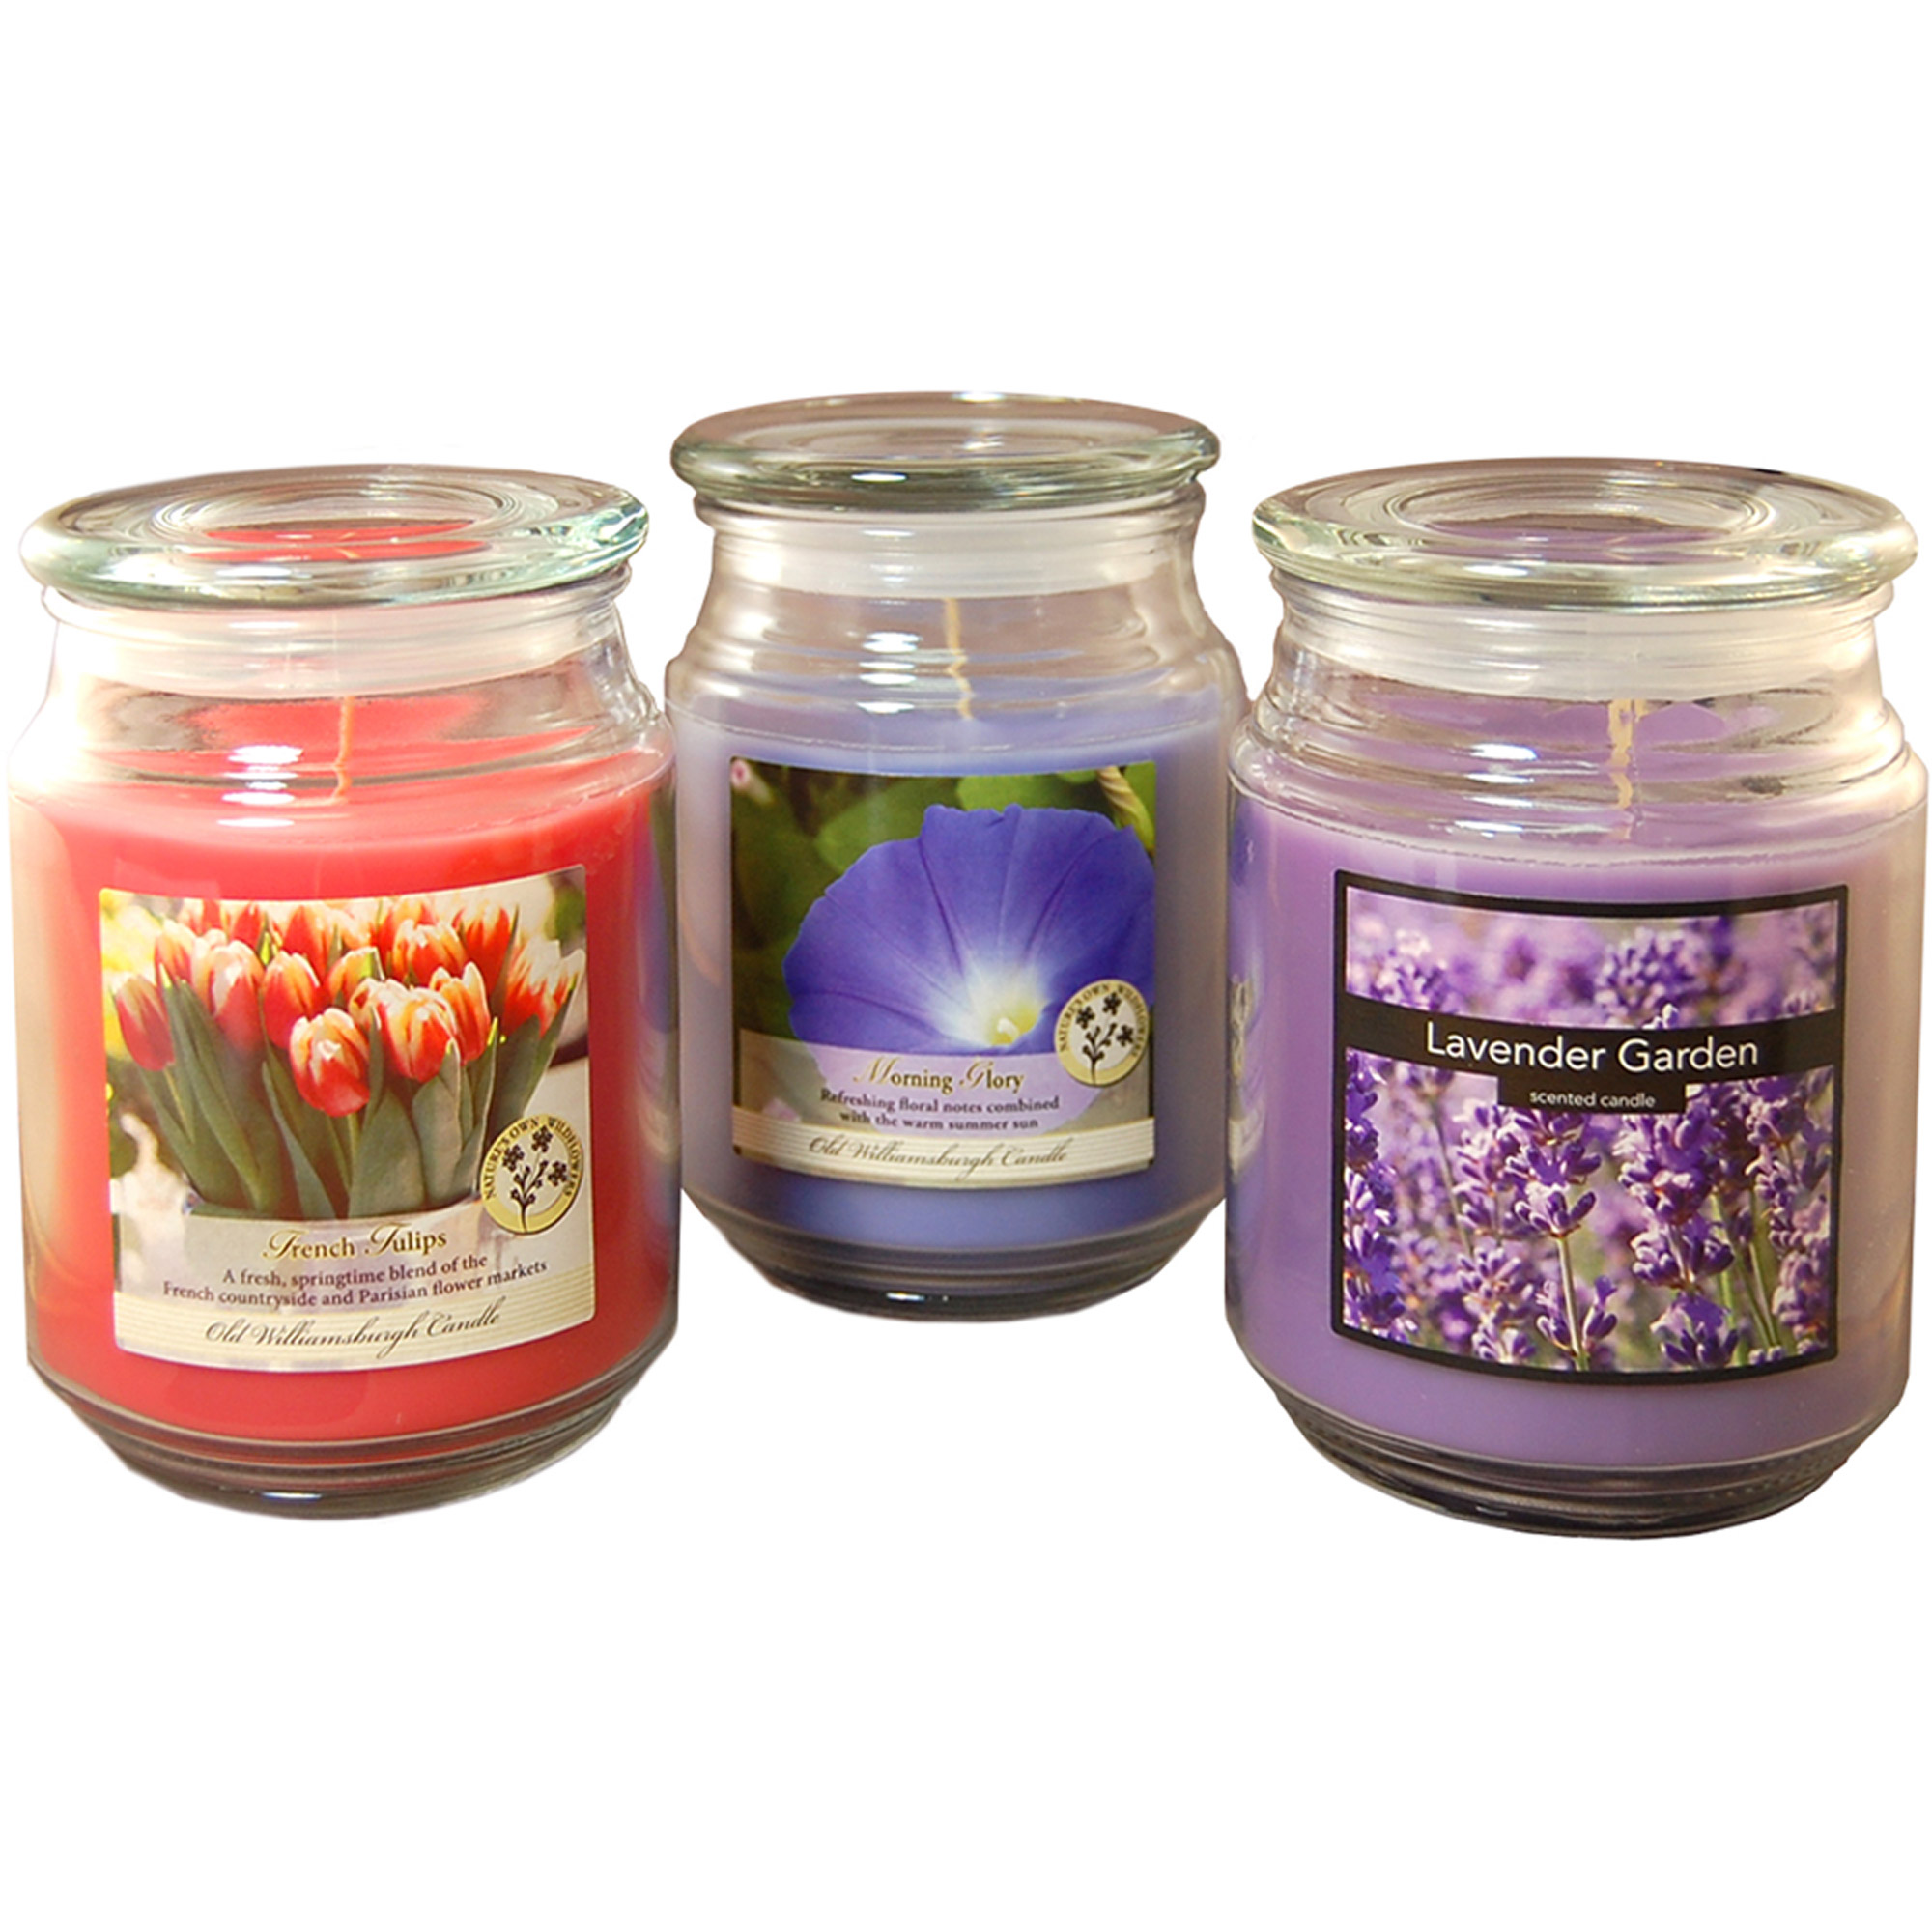 Floral Collection Scented Candles, 18 oz Apothecary Jar, Set of 3 by LumaBase